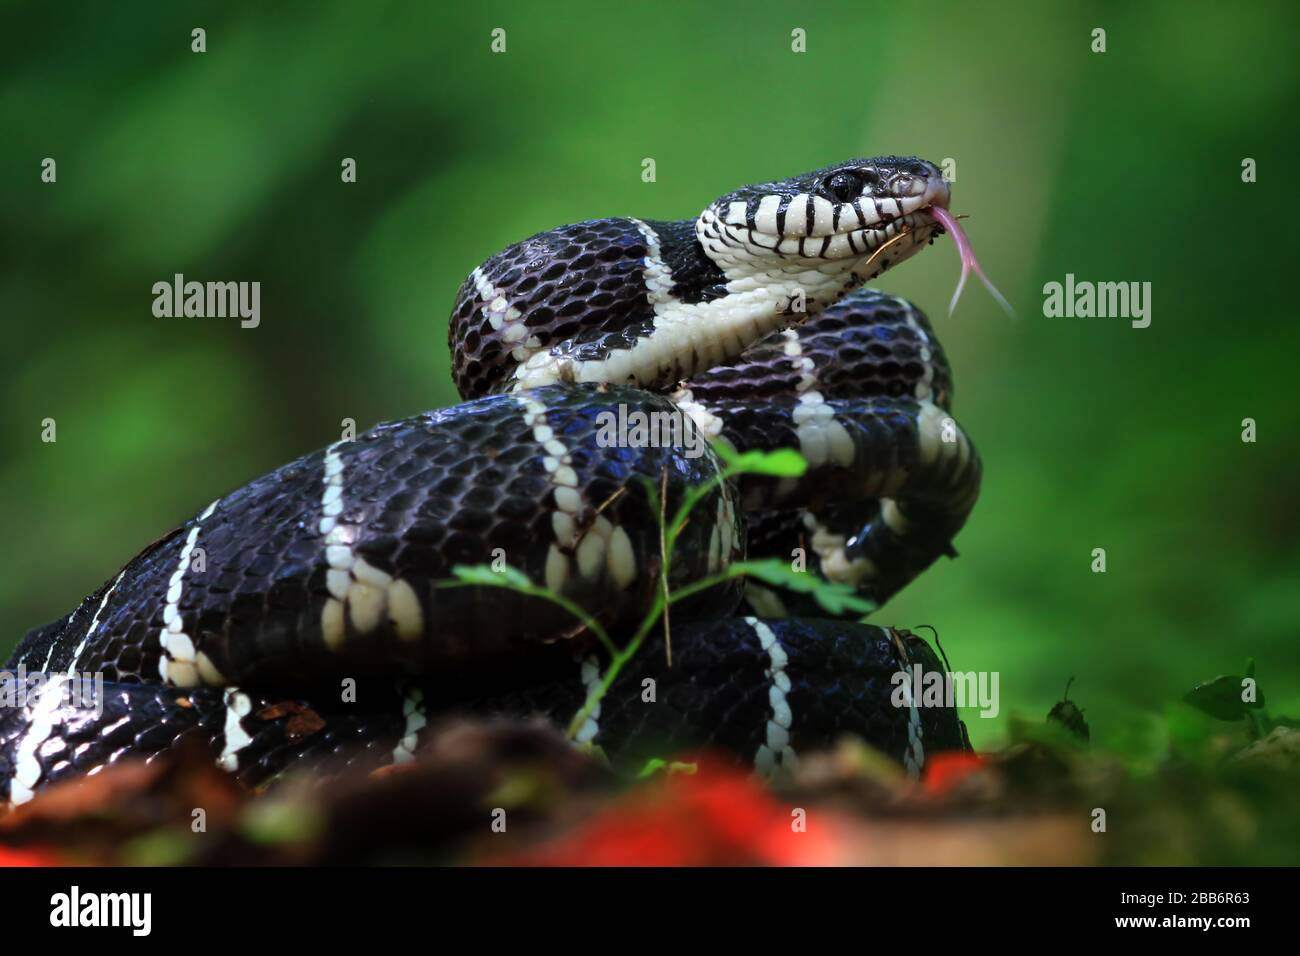 Coiled Snake Portrait High Resolution Stock Photography And Images Alamy